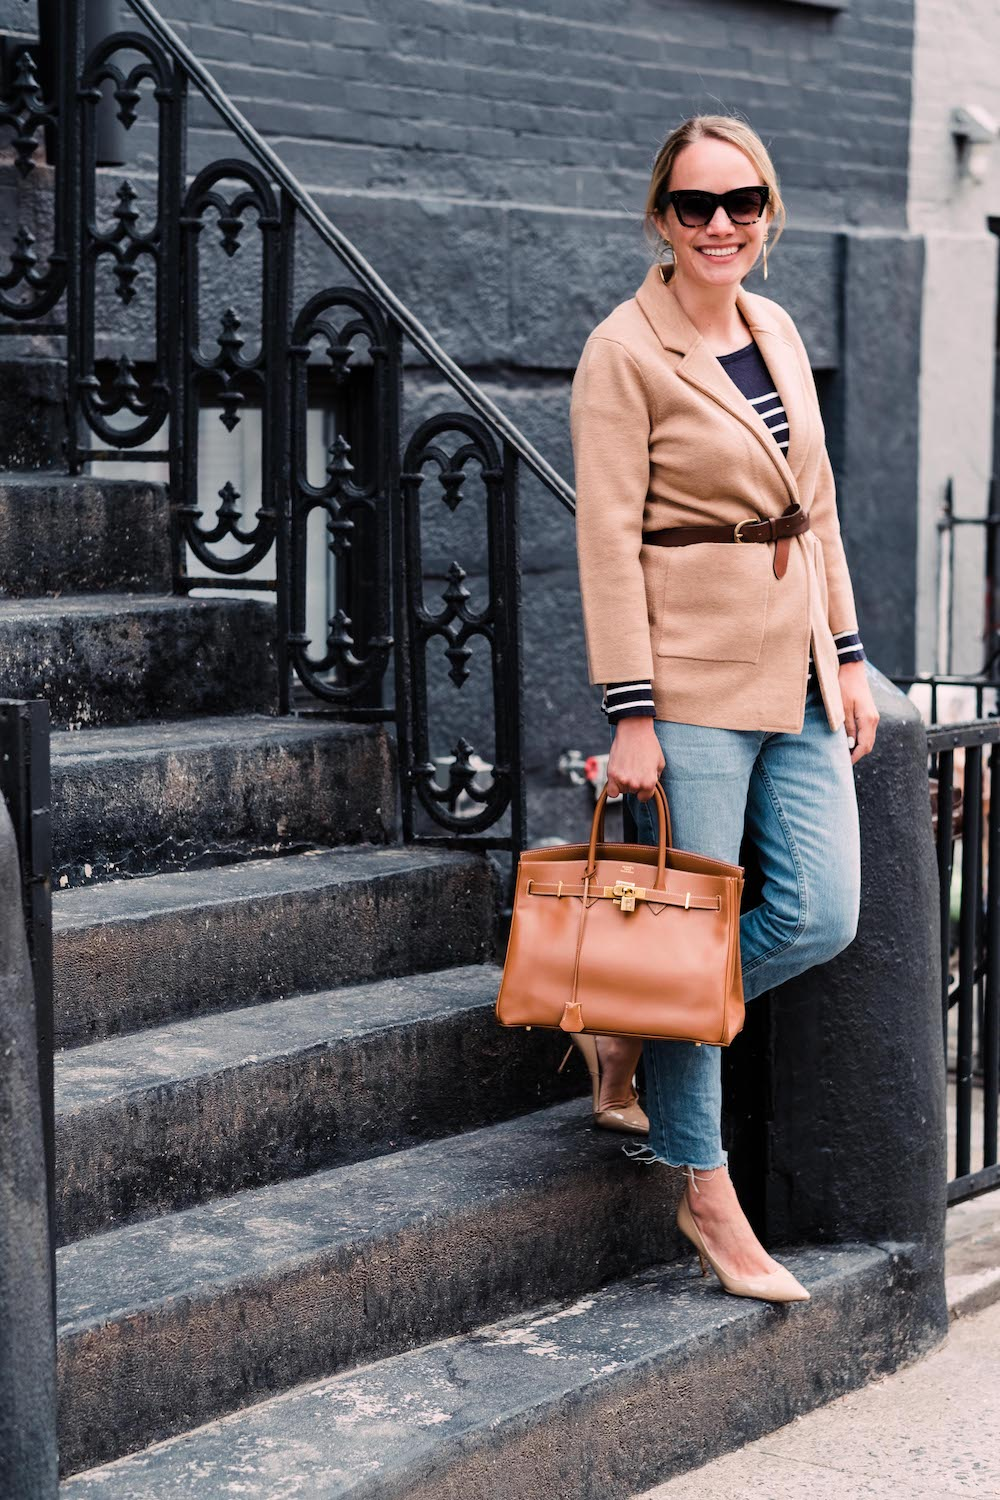 j.crew merino wool sweater-blazer + a few of my favorite podcasts | grace atwood, the stripe